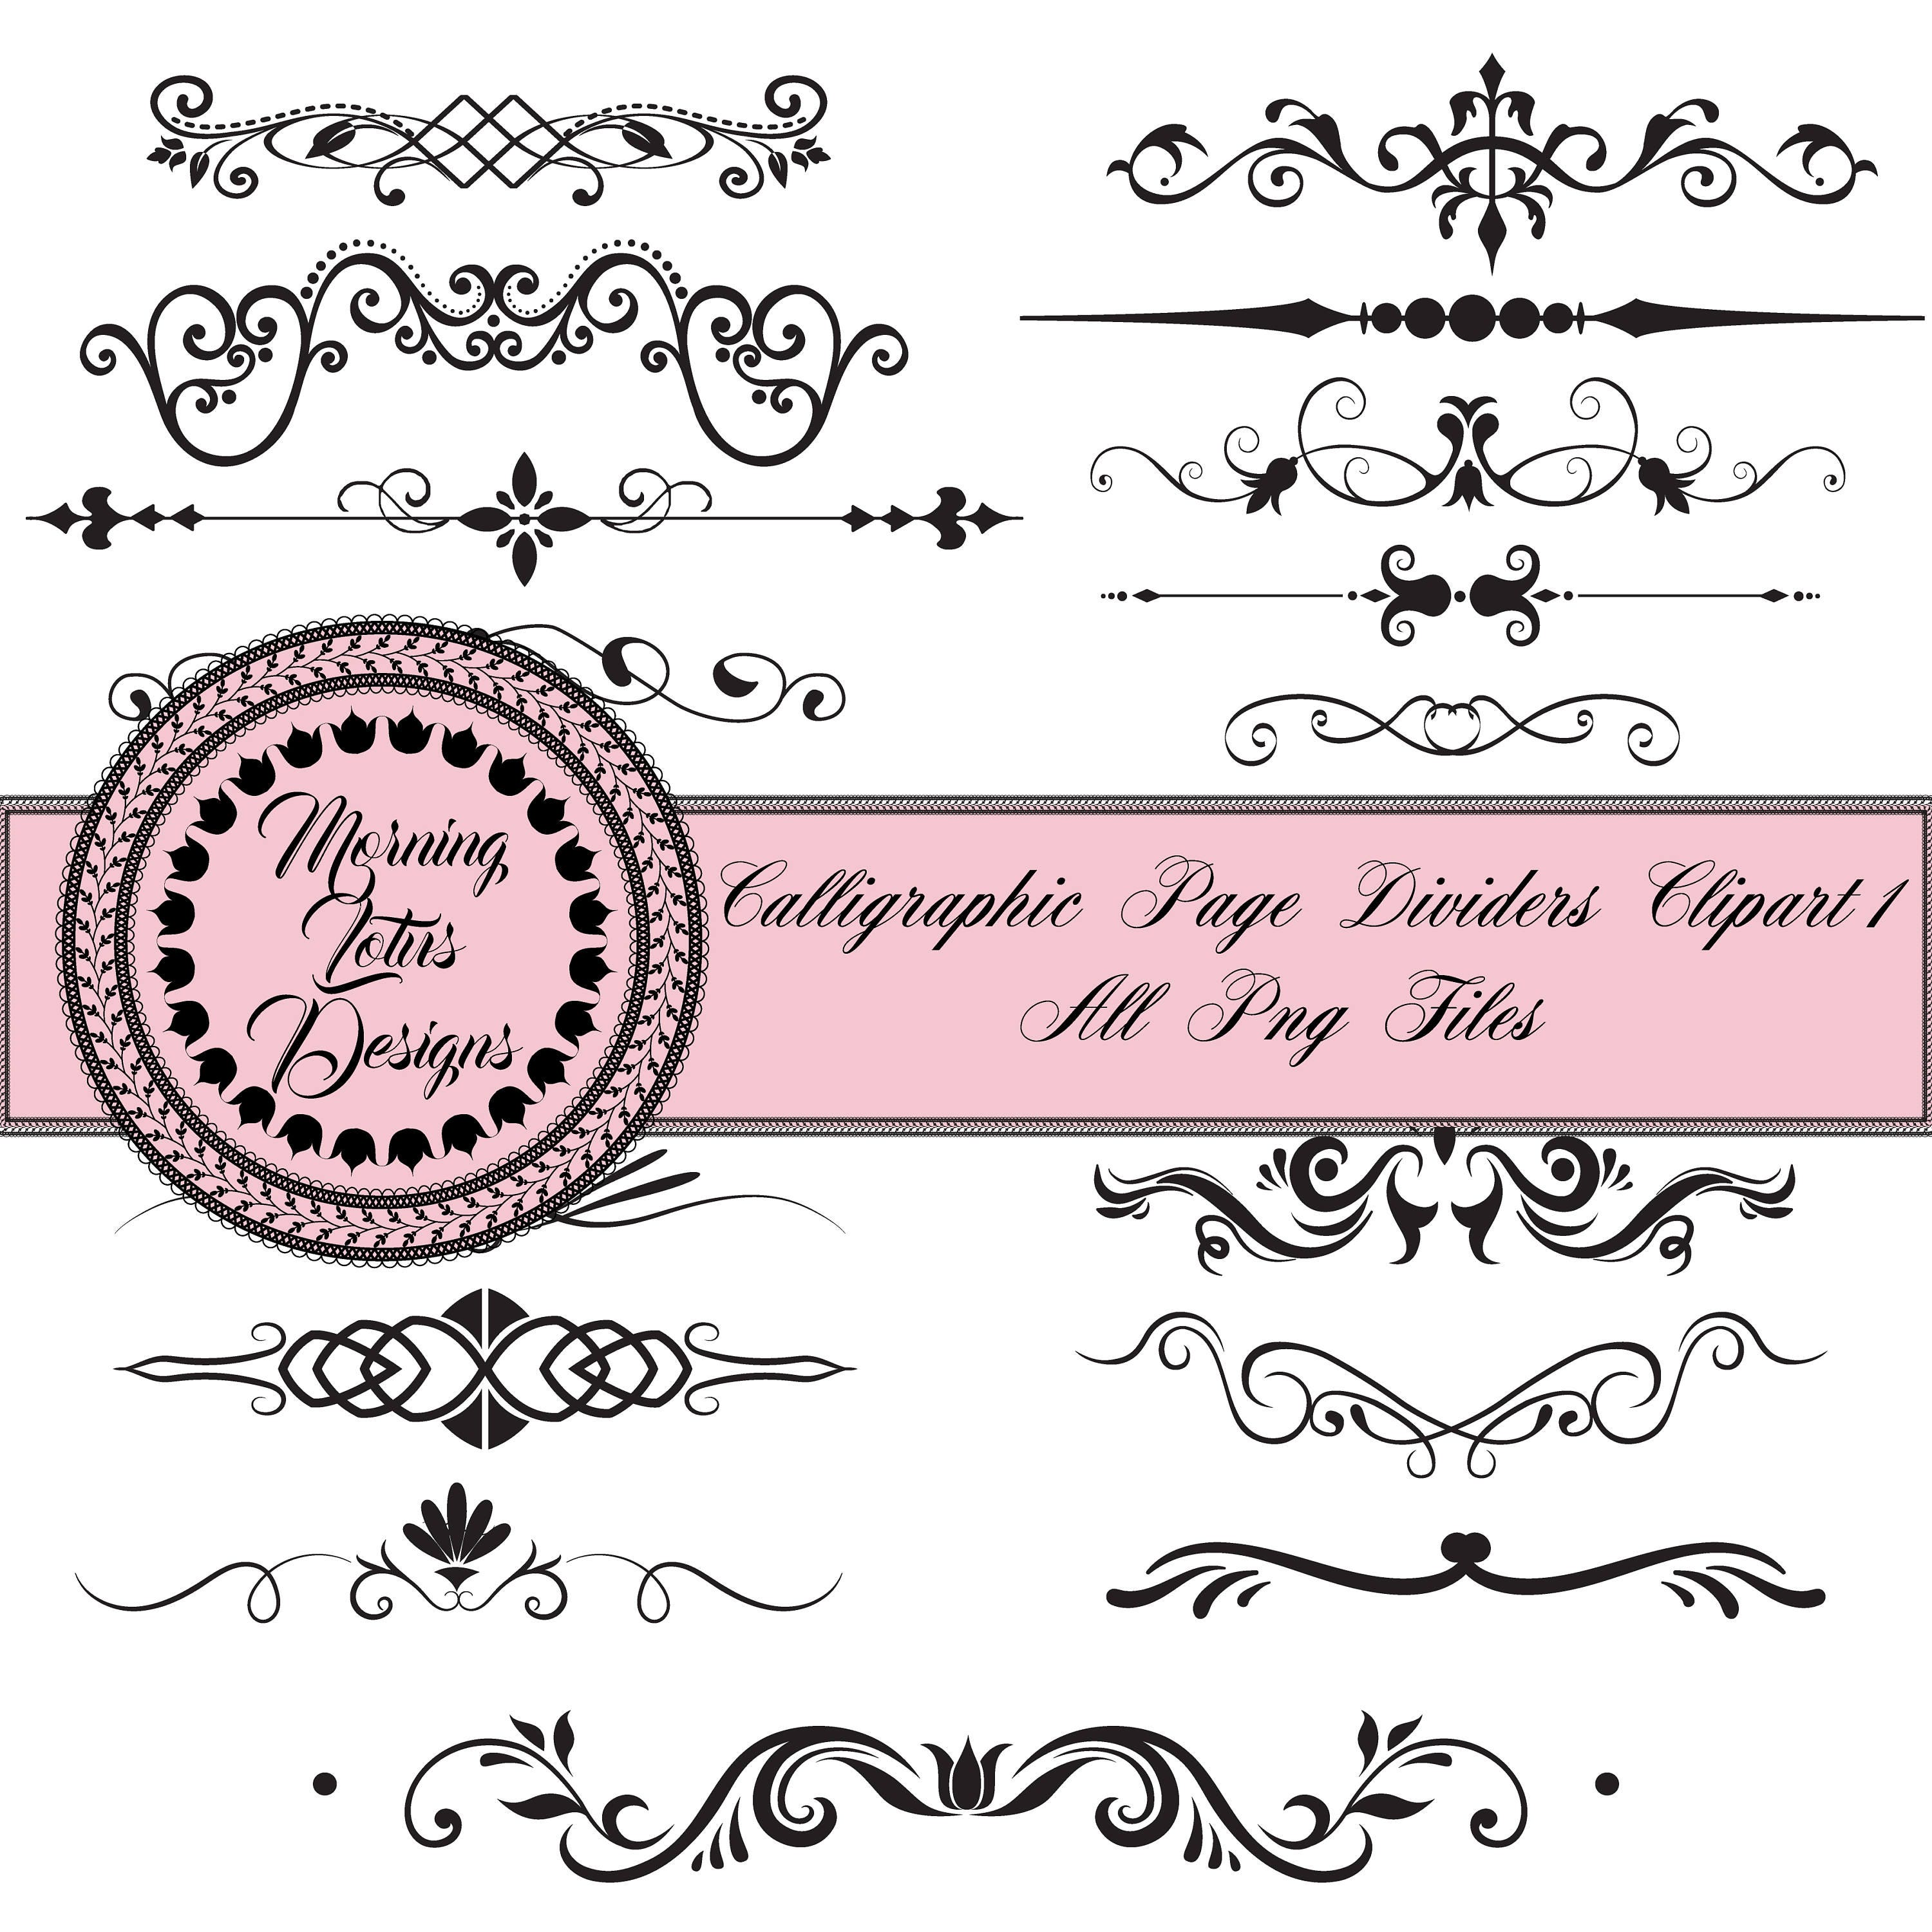 Page divider clipart Text Divider Clipart Decorative   Etsy Page Dividers